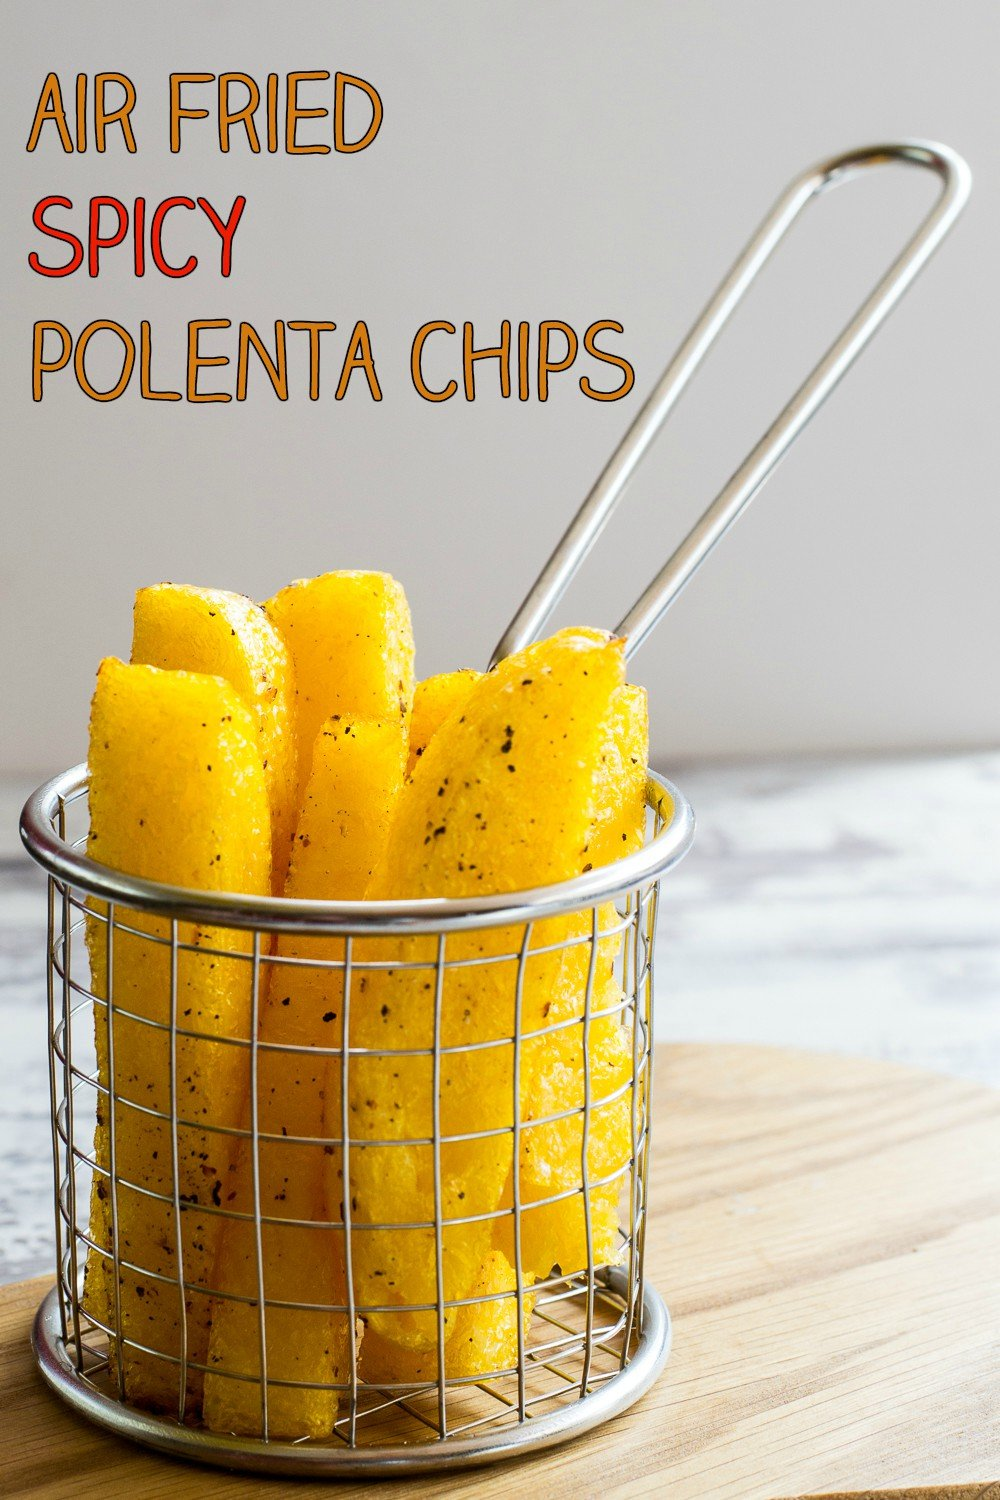 Air Fried Spicy Polenta Chips in the Optimum HealthyFry Air Fryer